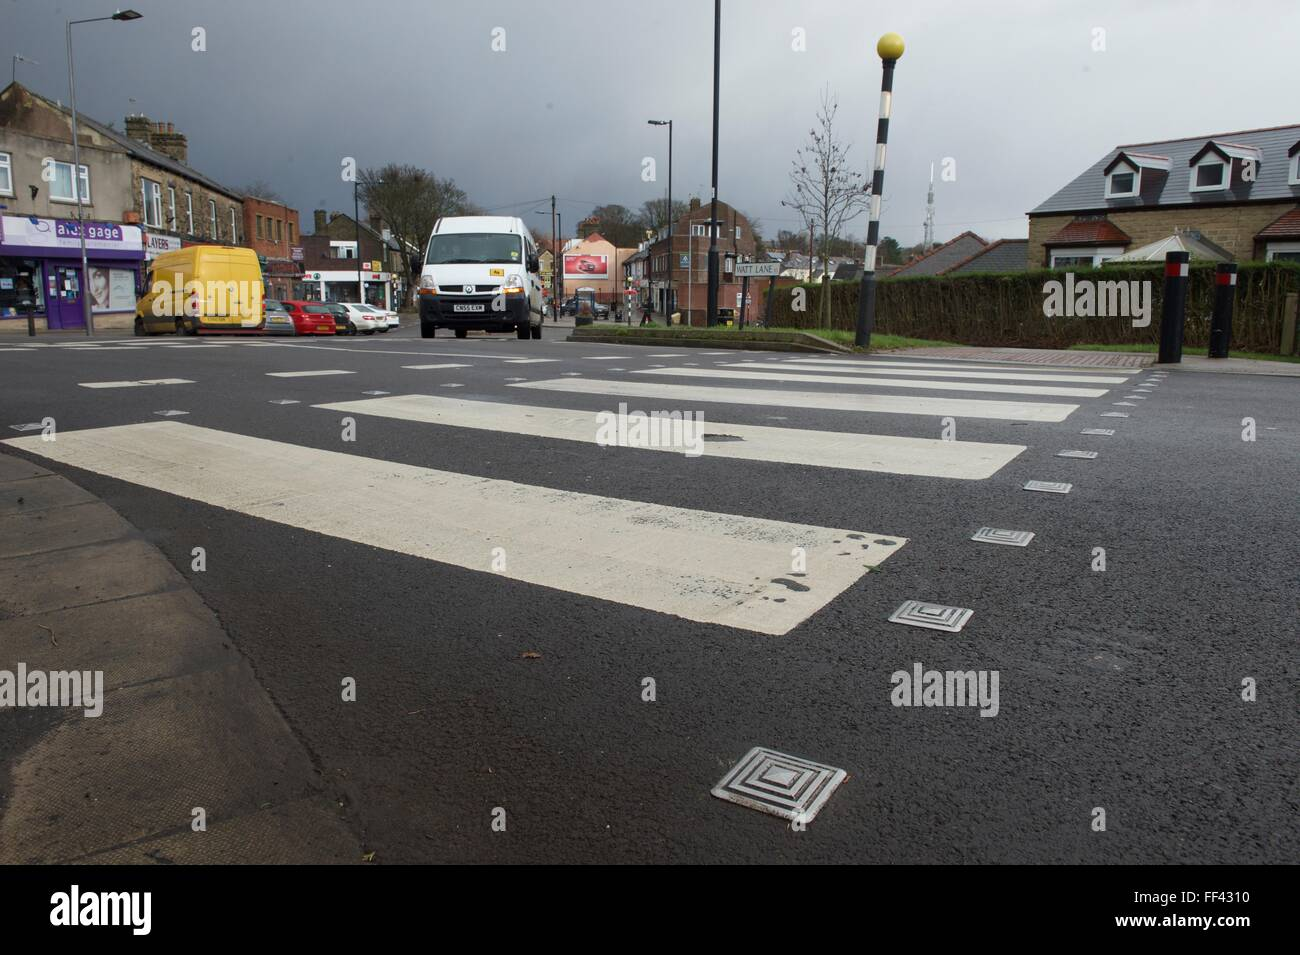 A Zebra crossing on a residential street in Sheffield South Yorkshire - Stock Image